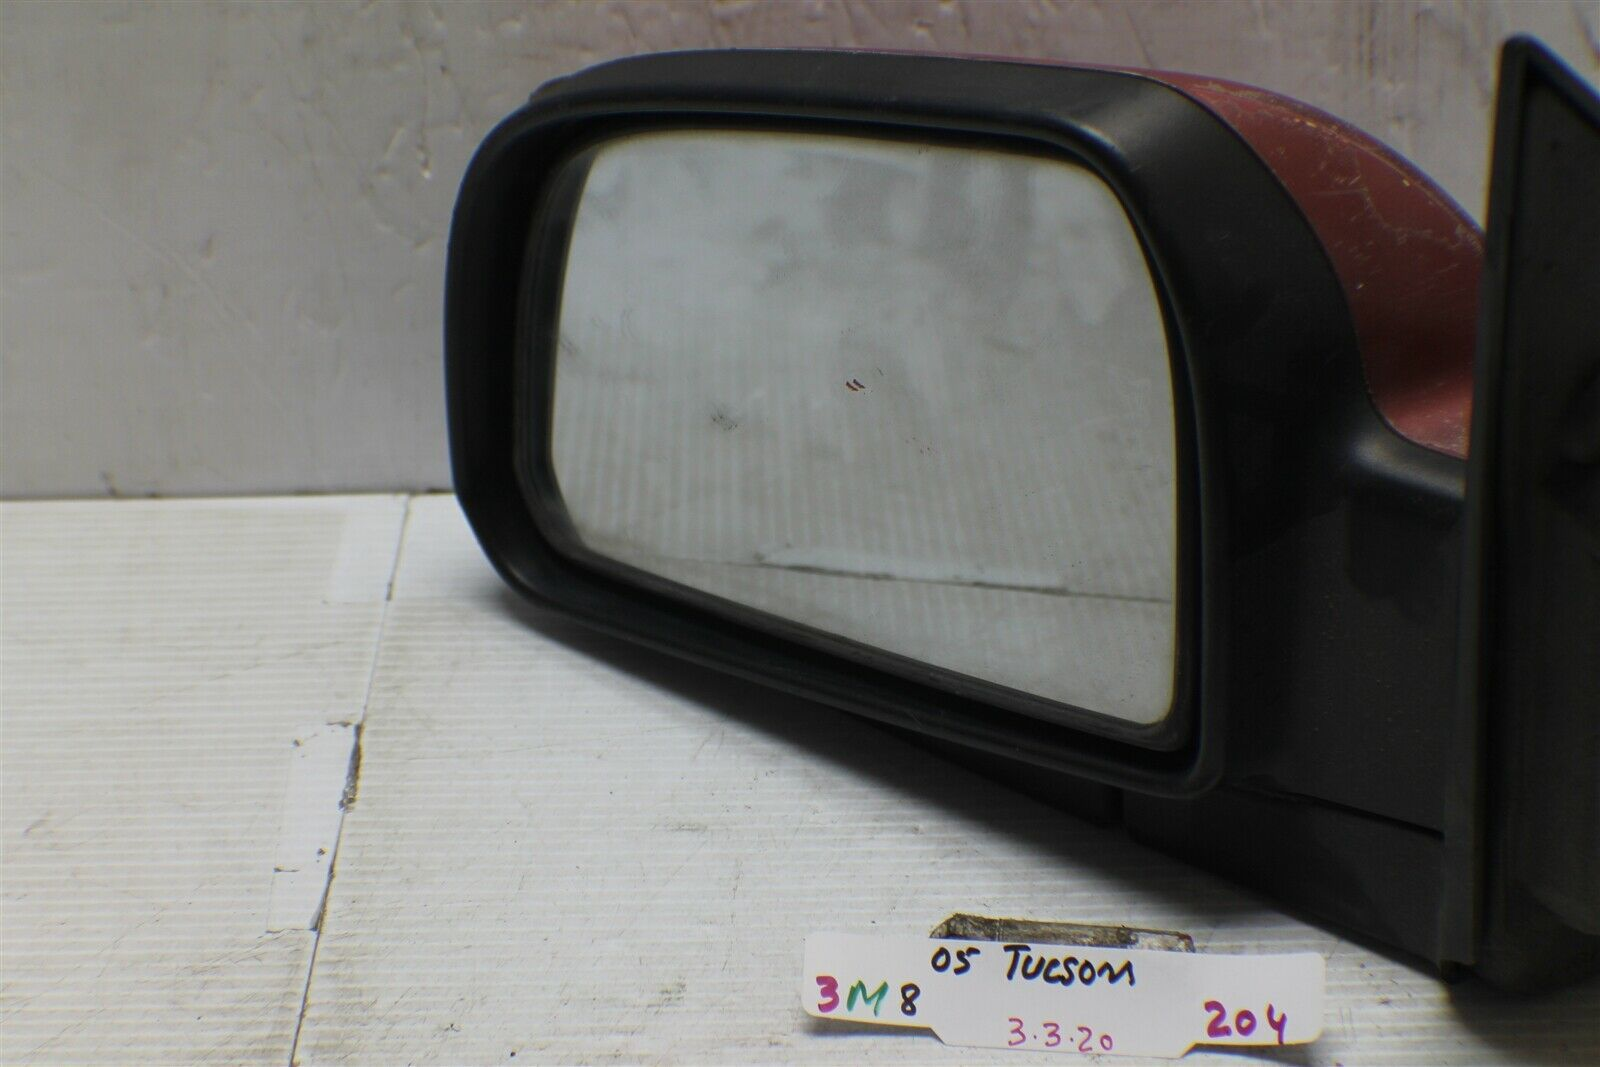 2005-2009 Hyundai Tucson Driver Side View Power Door Mirror OEM 204 3M8 - $17.81